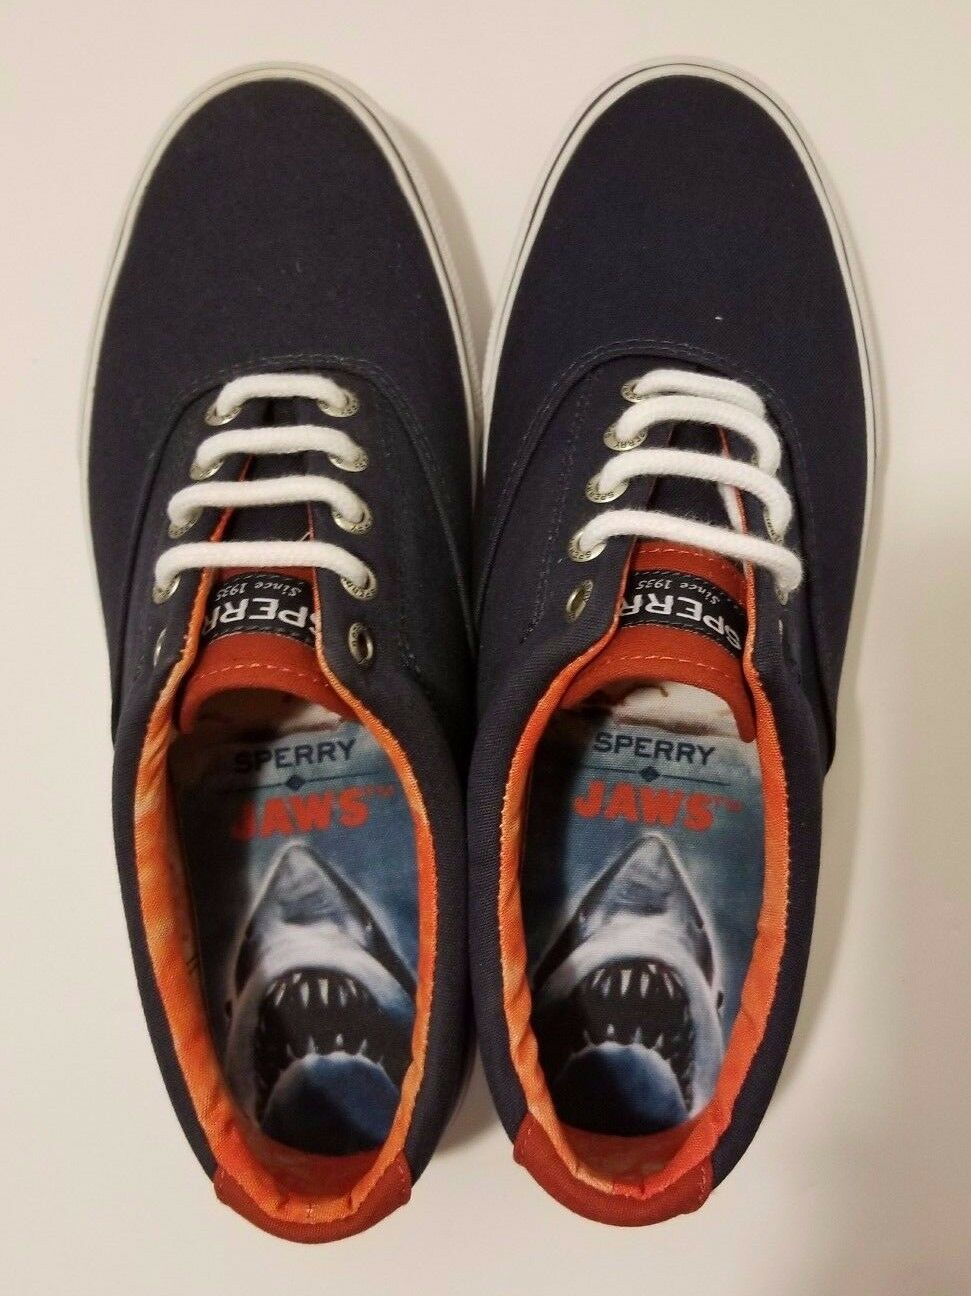 *NEW* Sperry Sts 14346 Limited Edition Jaws Lace Ups (STS143456)